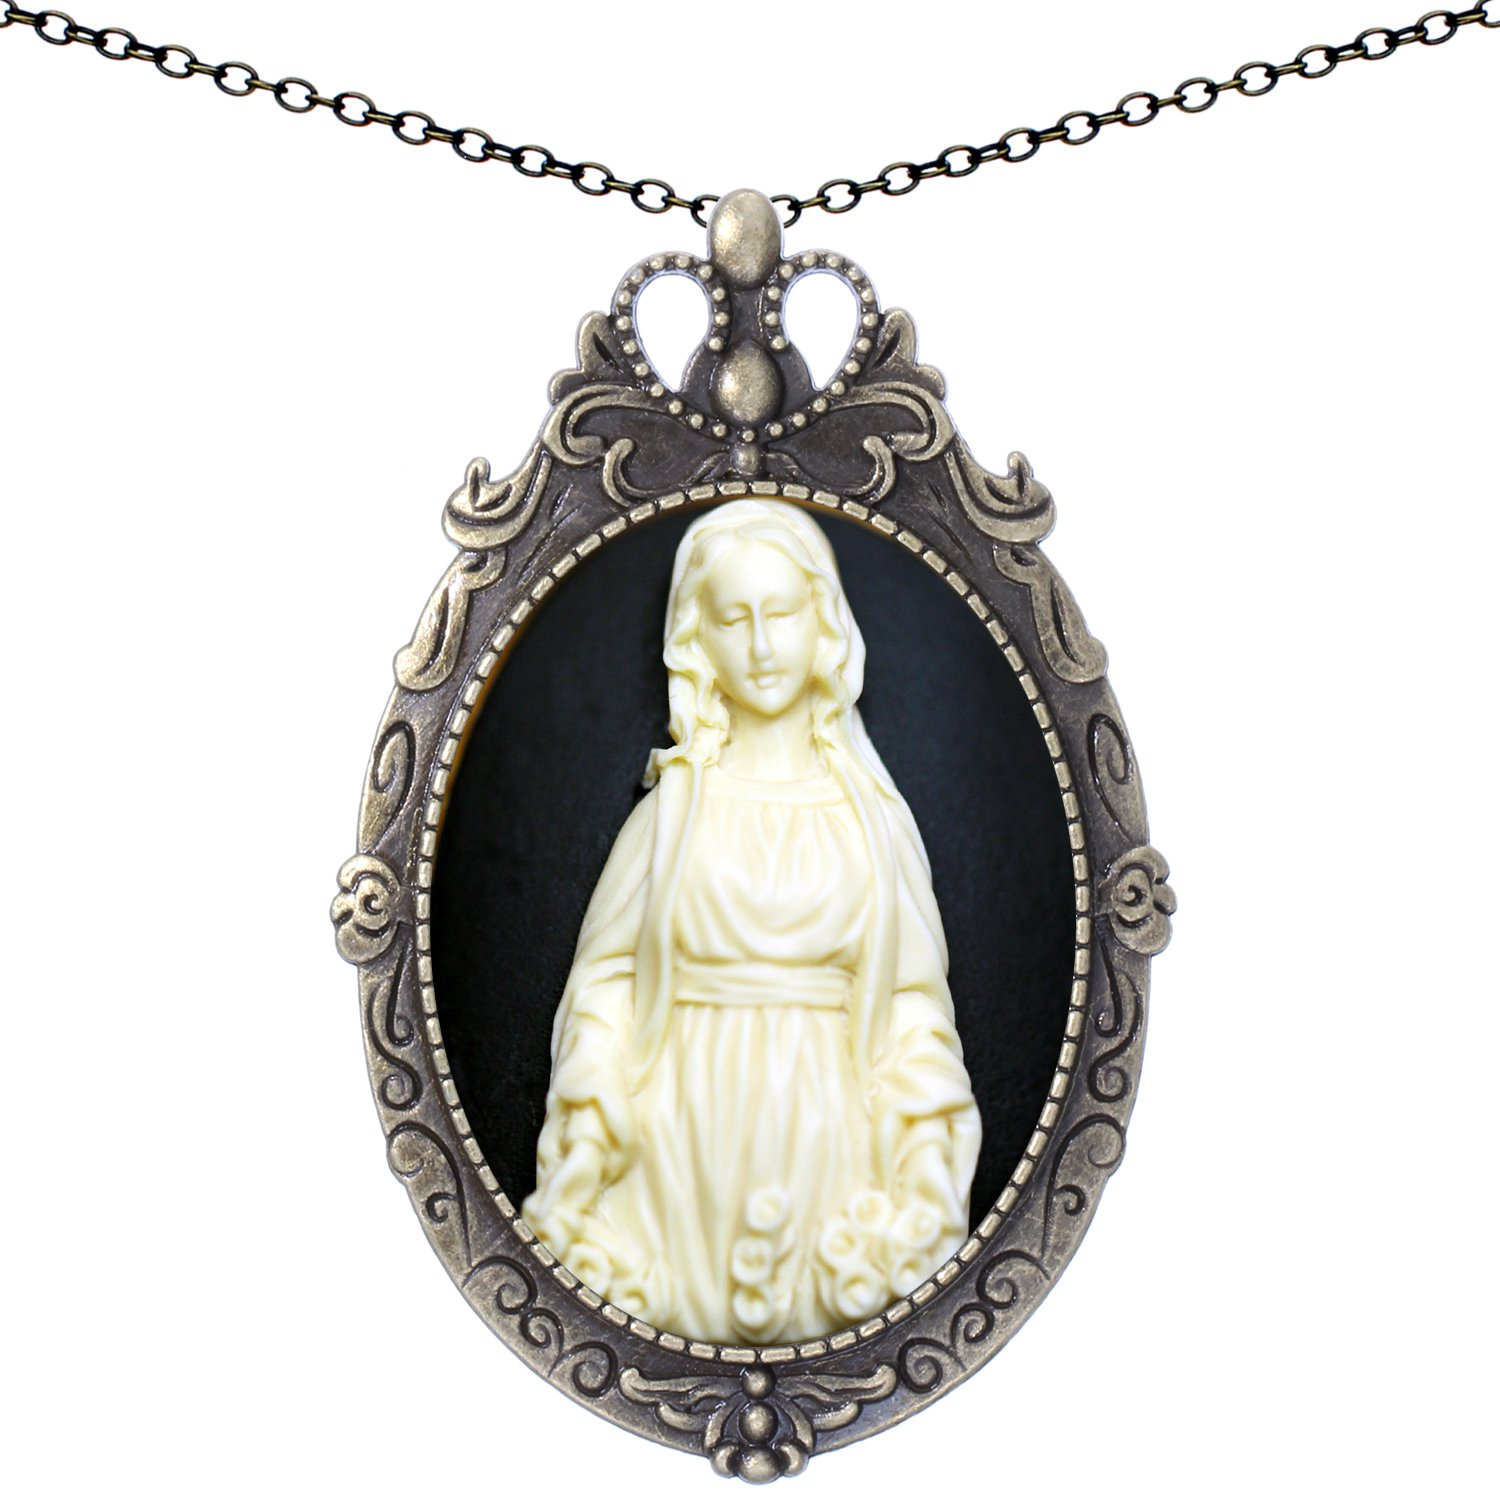 Shield Statue Brooch Antique Brass Shape Pendant Mary Necklace Two Way 20'' Chain Pouch Gift